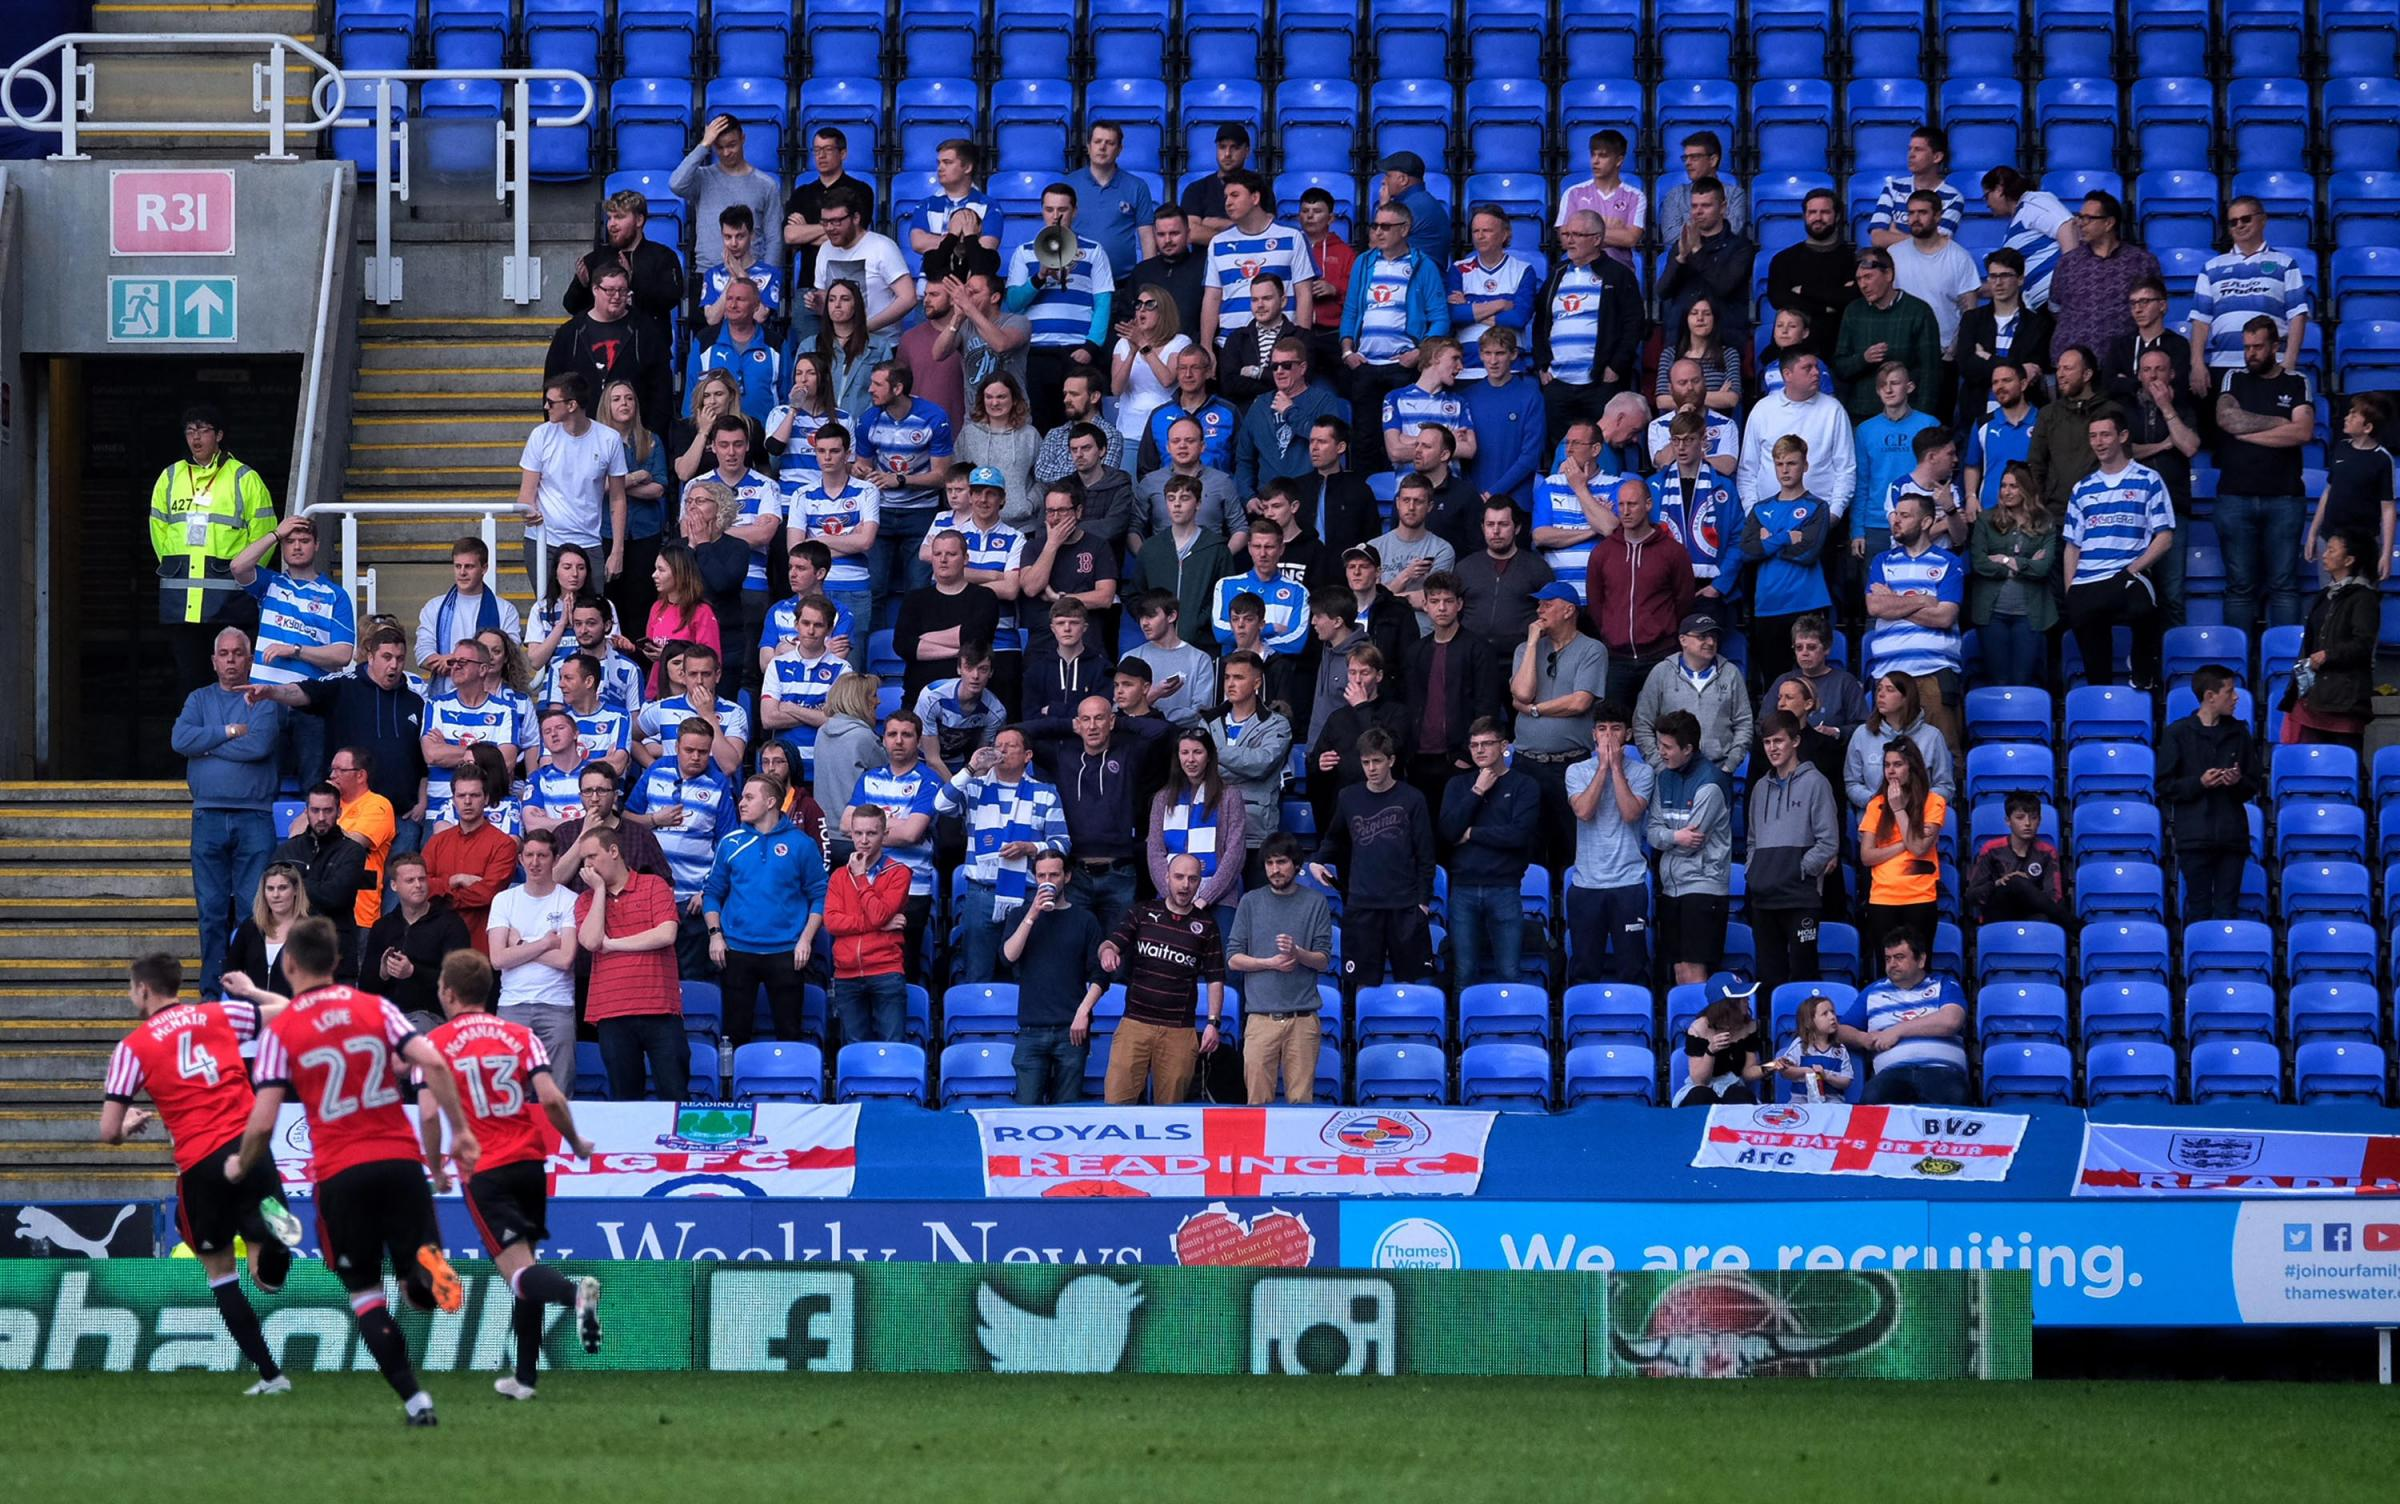 Liam Moore is paying for these south stand supporters to travel to Sheffield Wednesday.